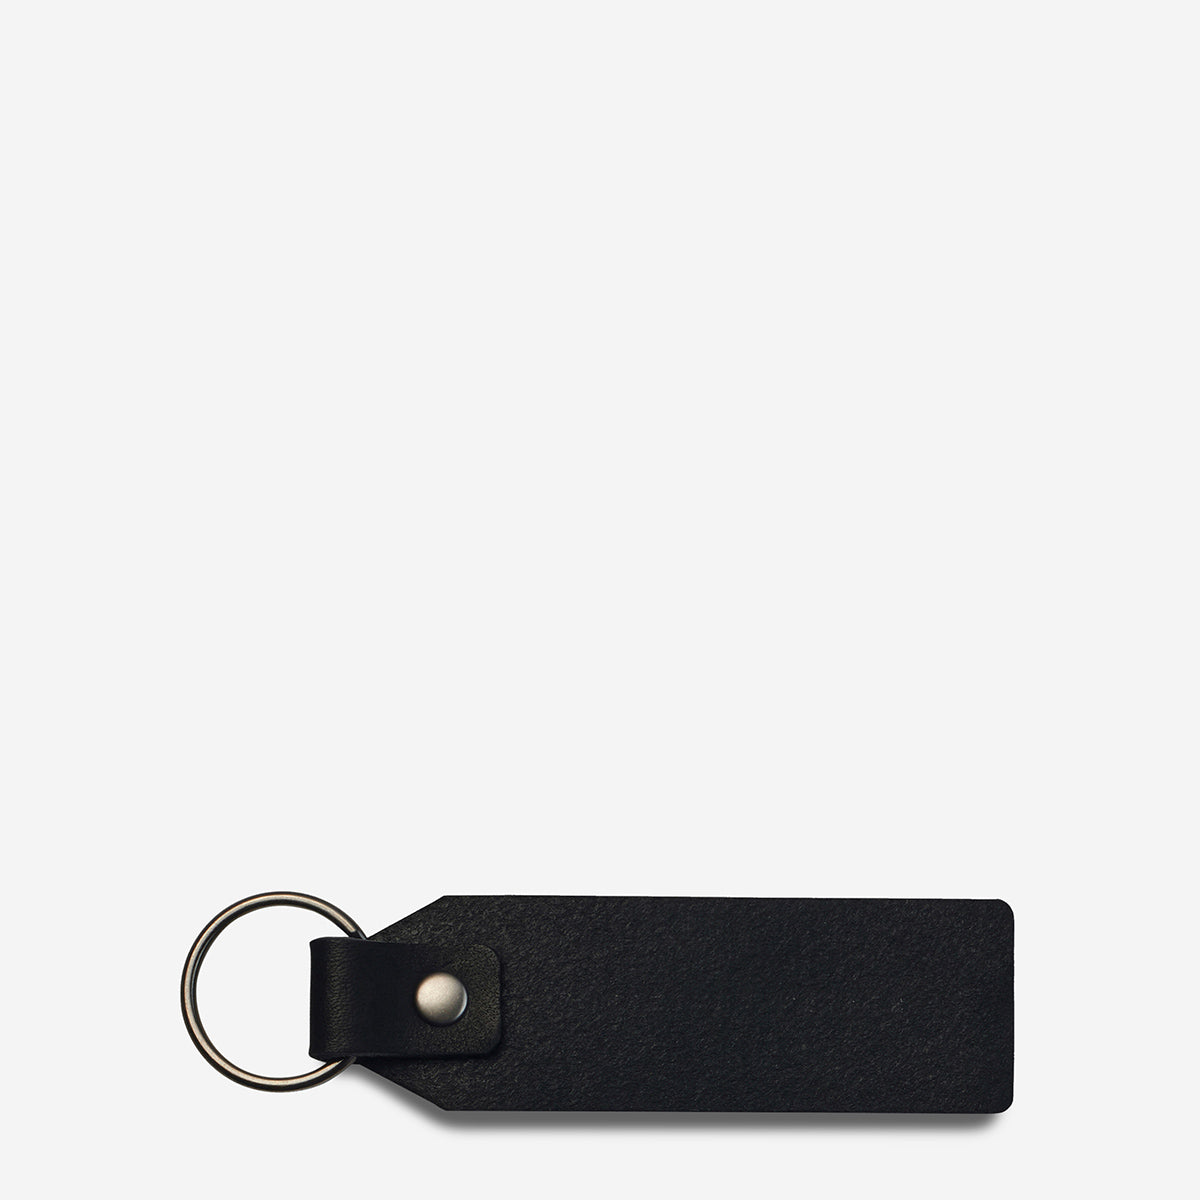 Status Anxiety If I Stay Genuine Leather Keyring - Black